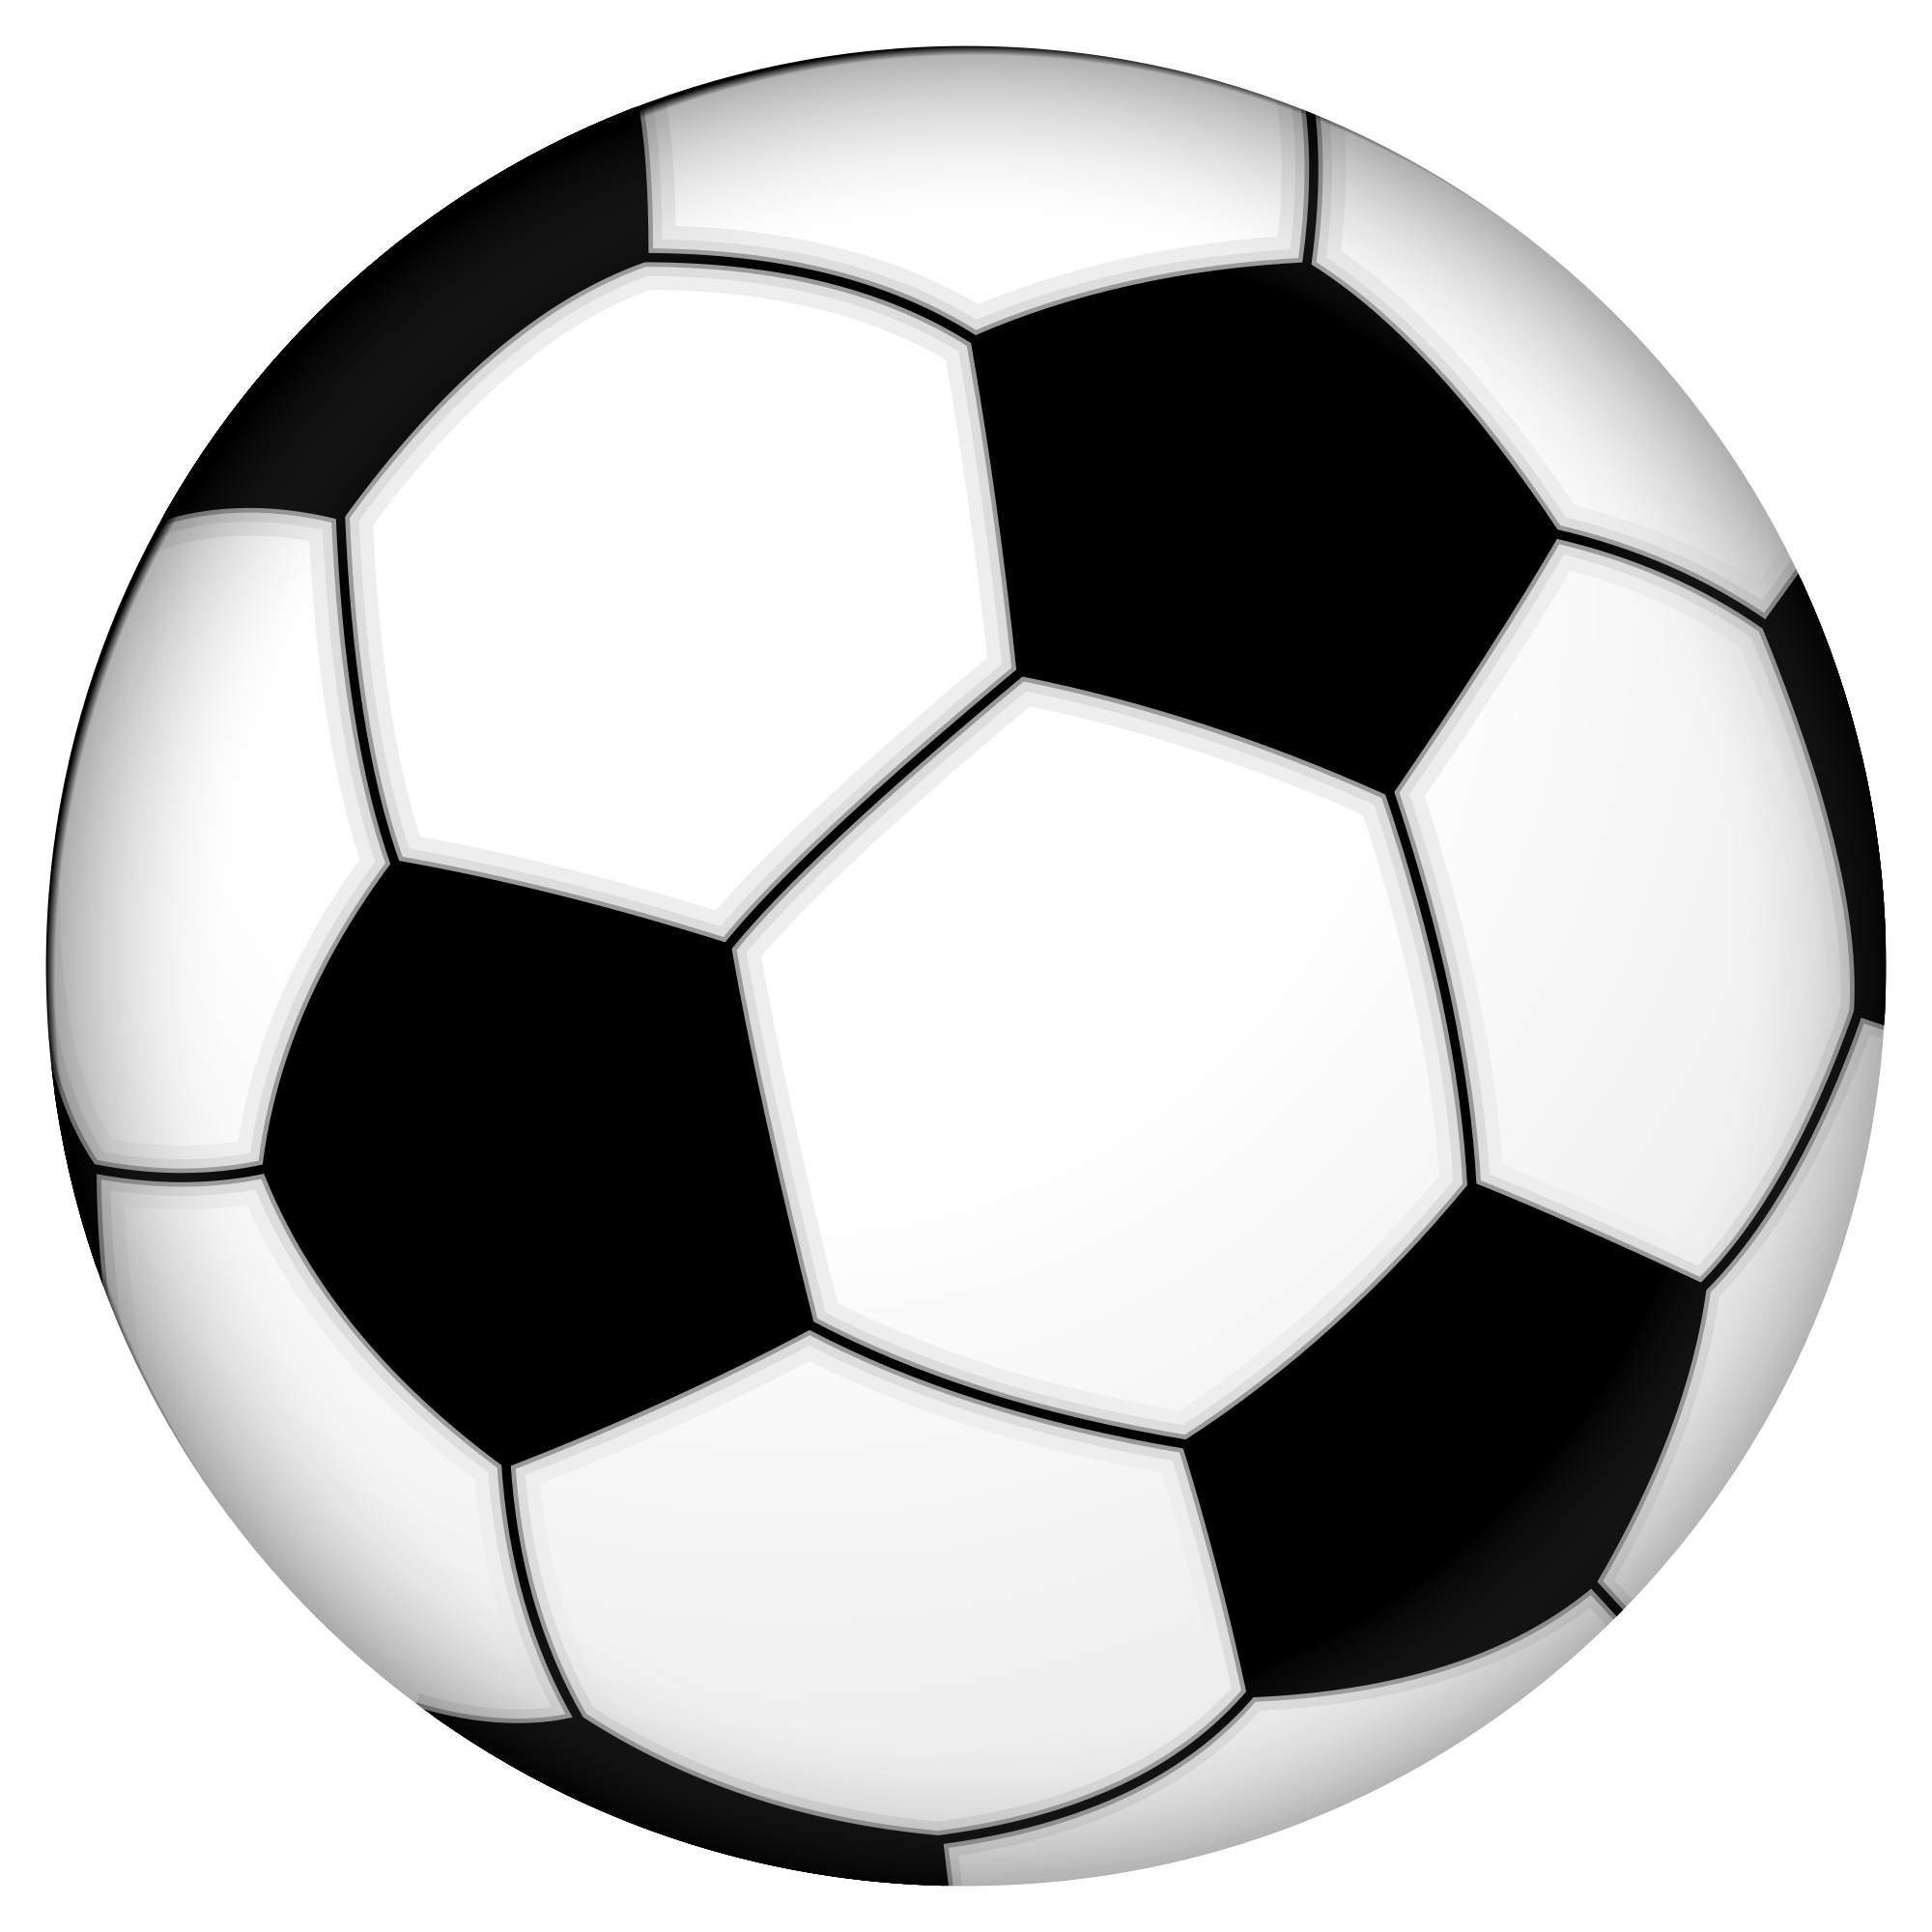 2000x2000 Image Of Soccer Ball Clipart